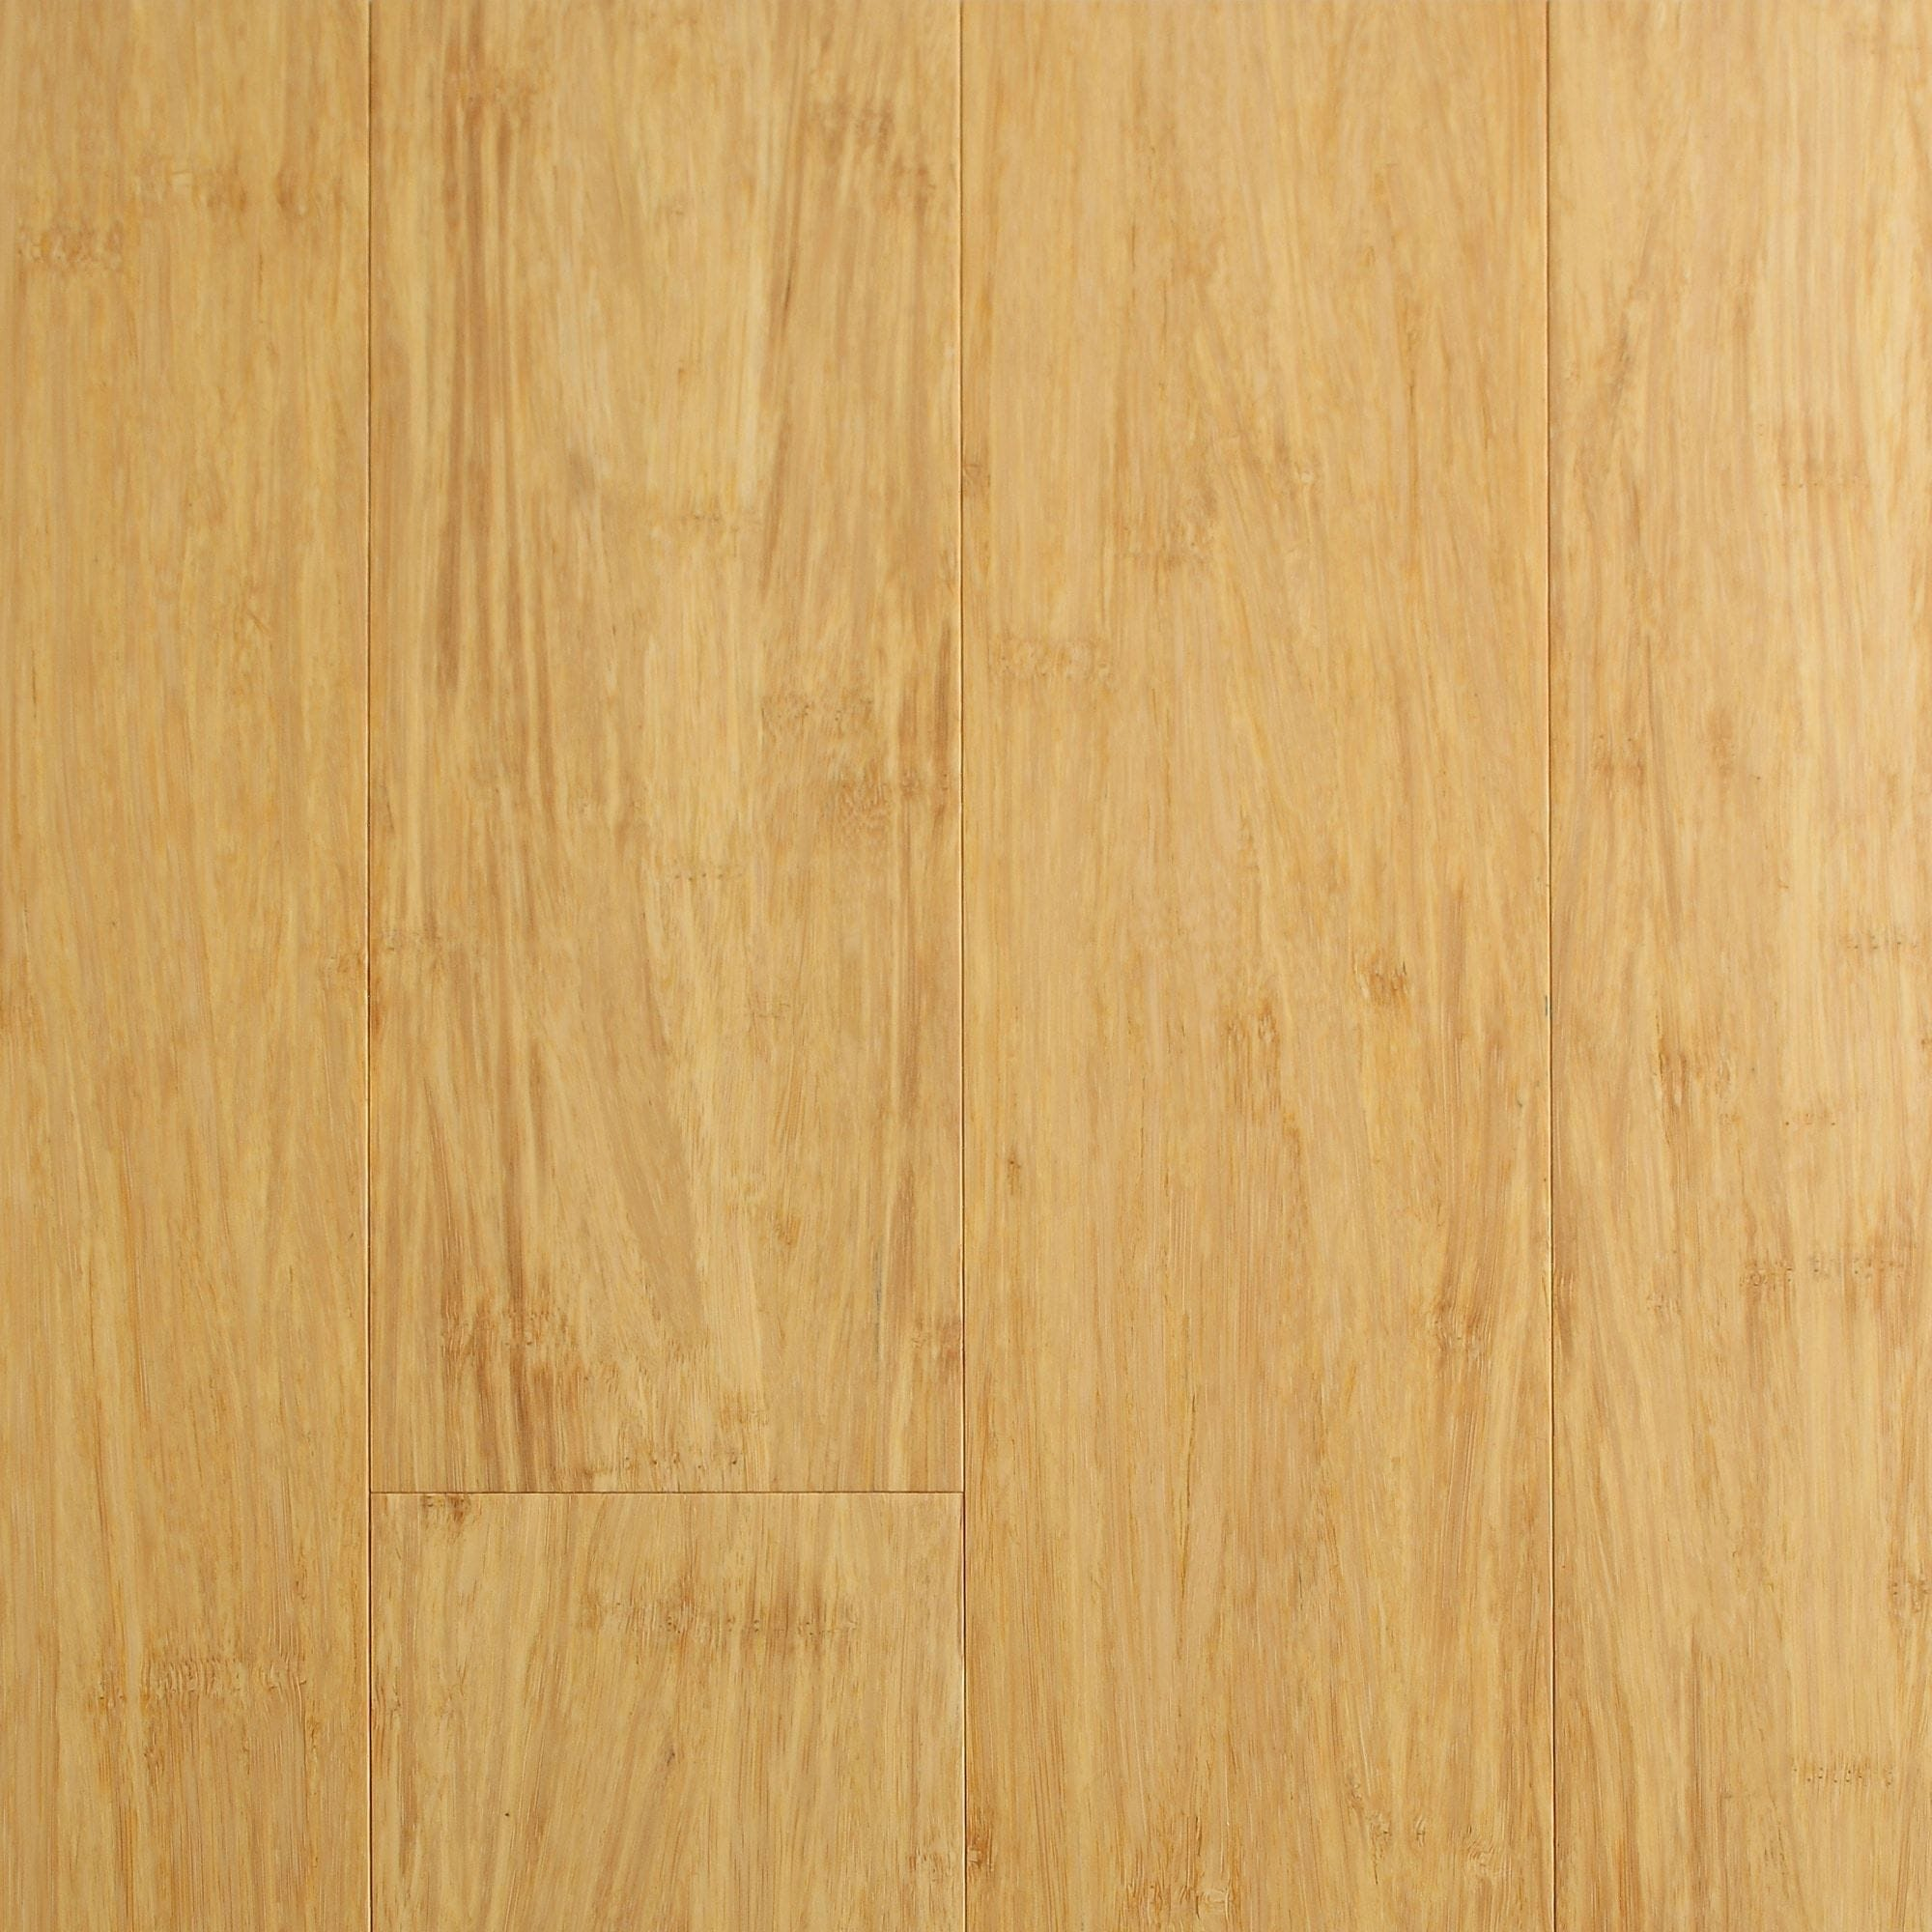 Bamboo Laminate Countertop Bamboo Laminate Flooring